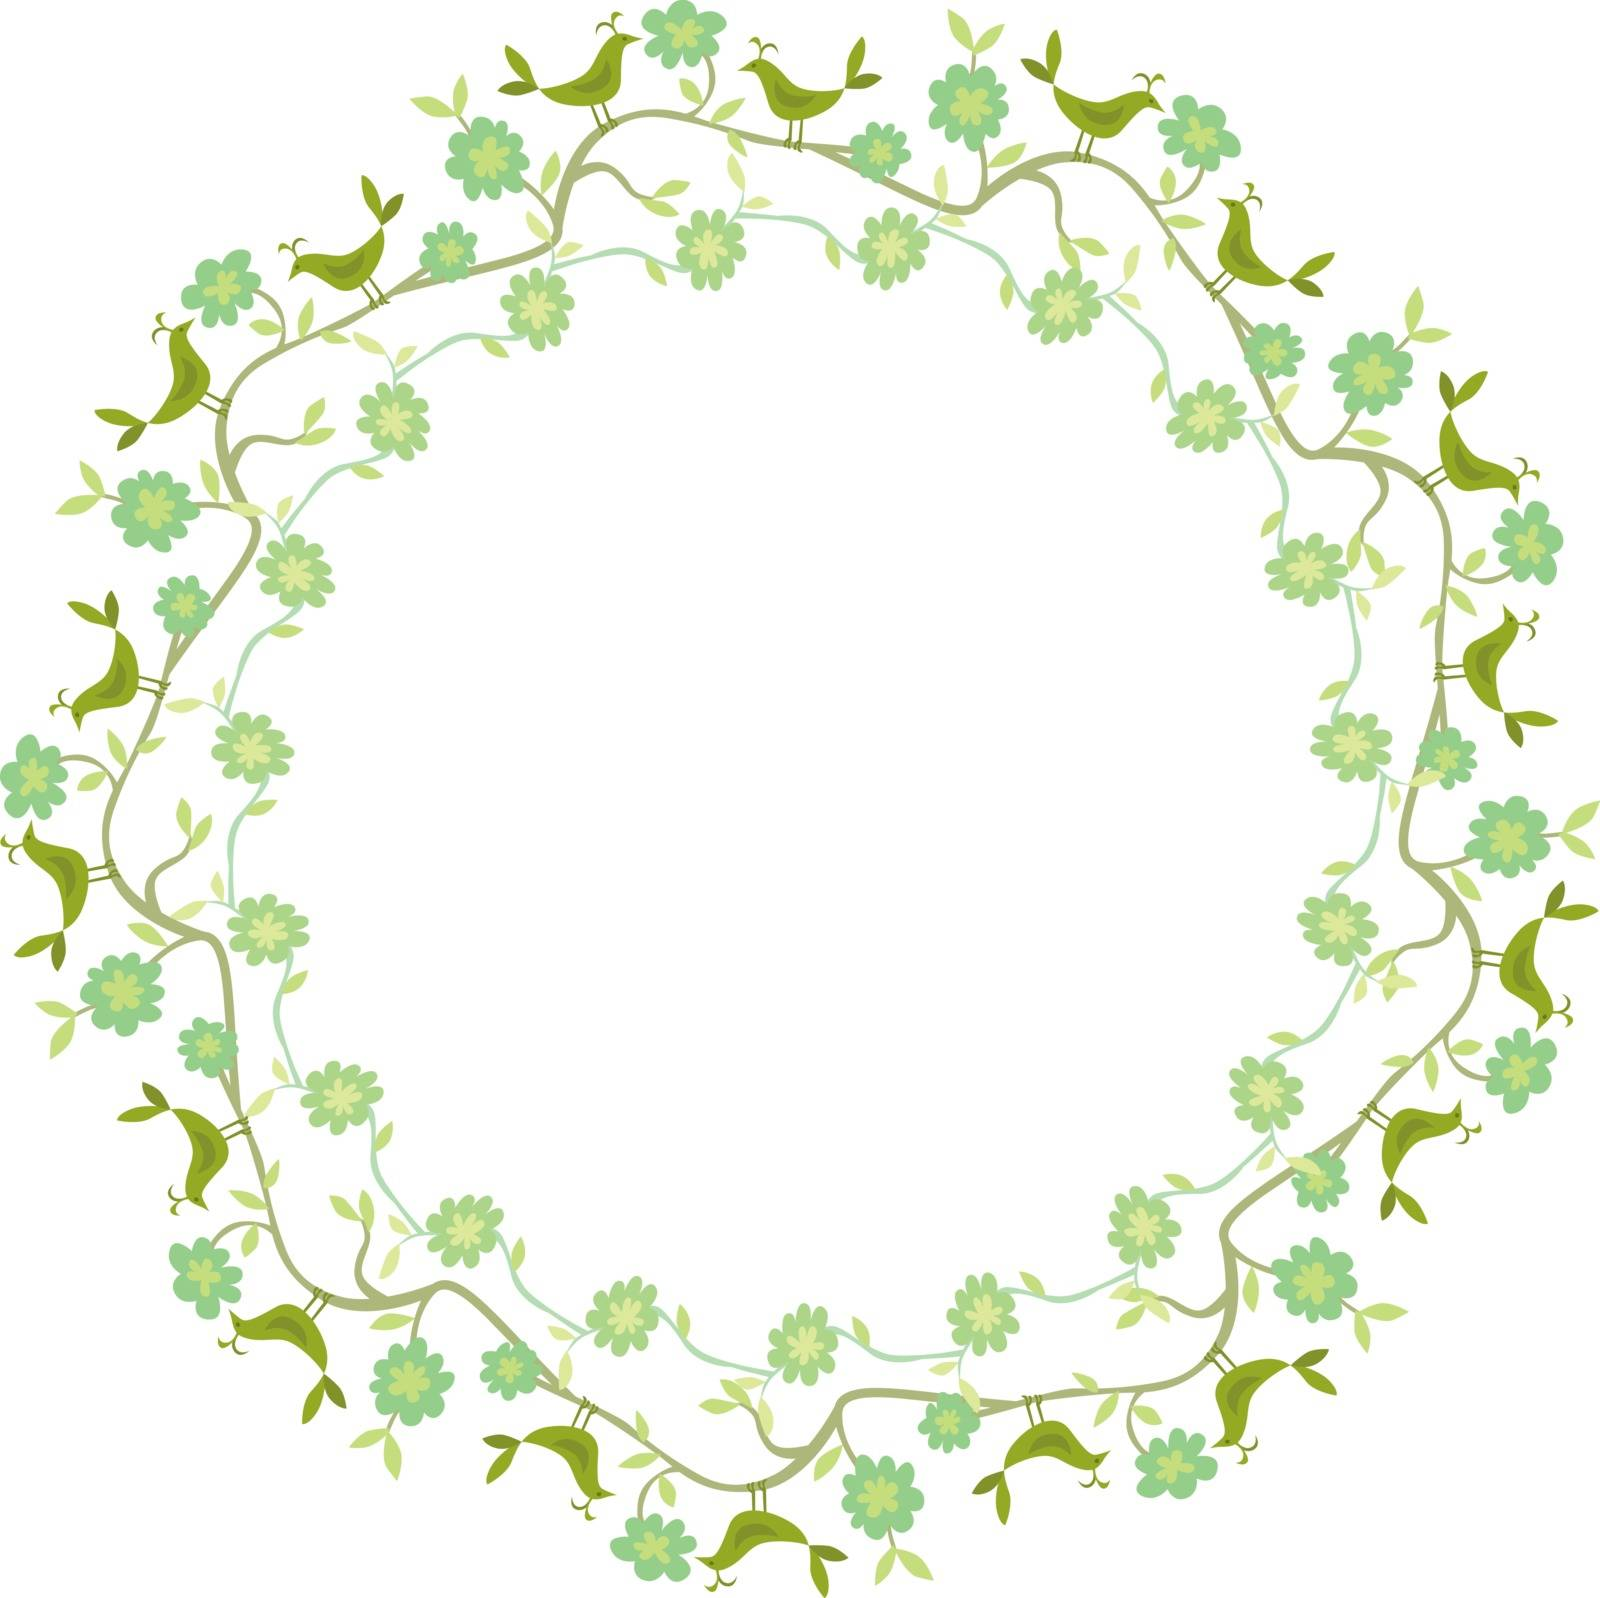 Decorative illustrated circle frame made of flowers and birds